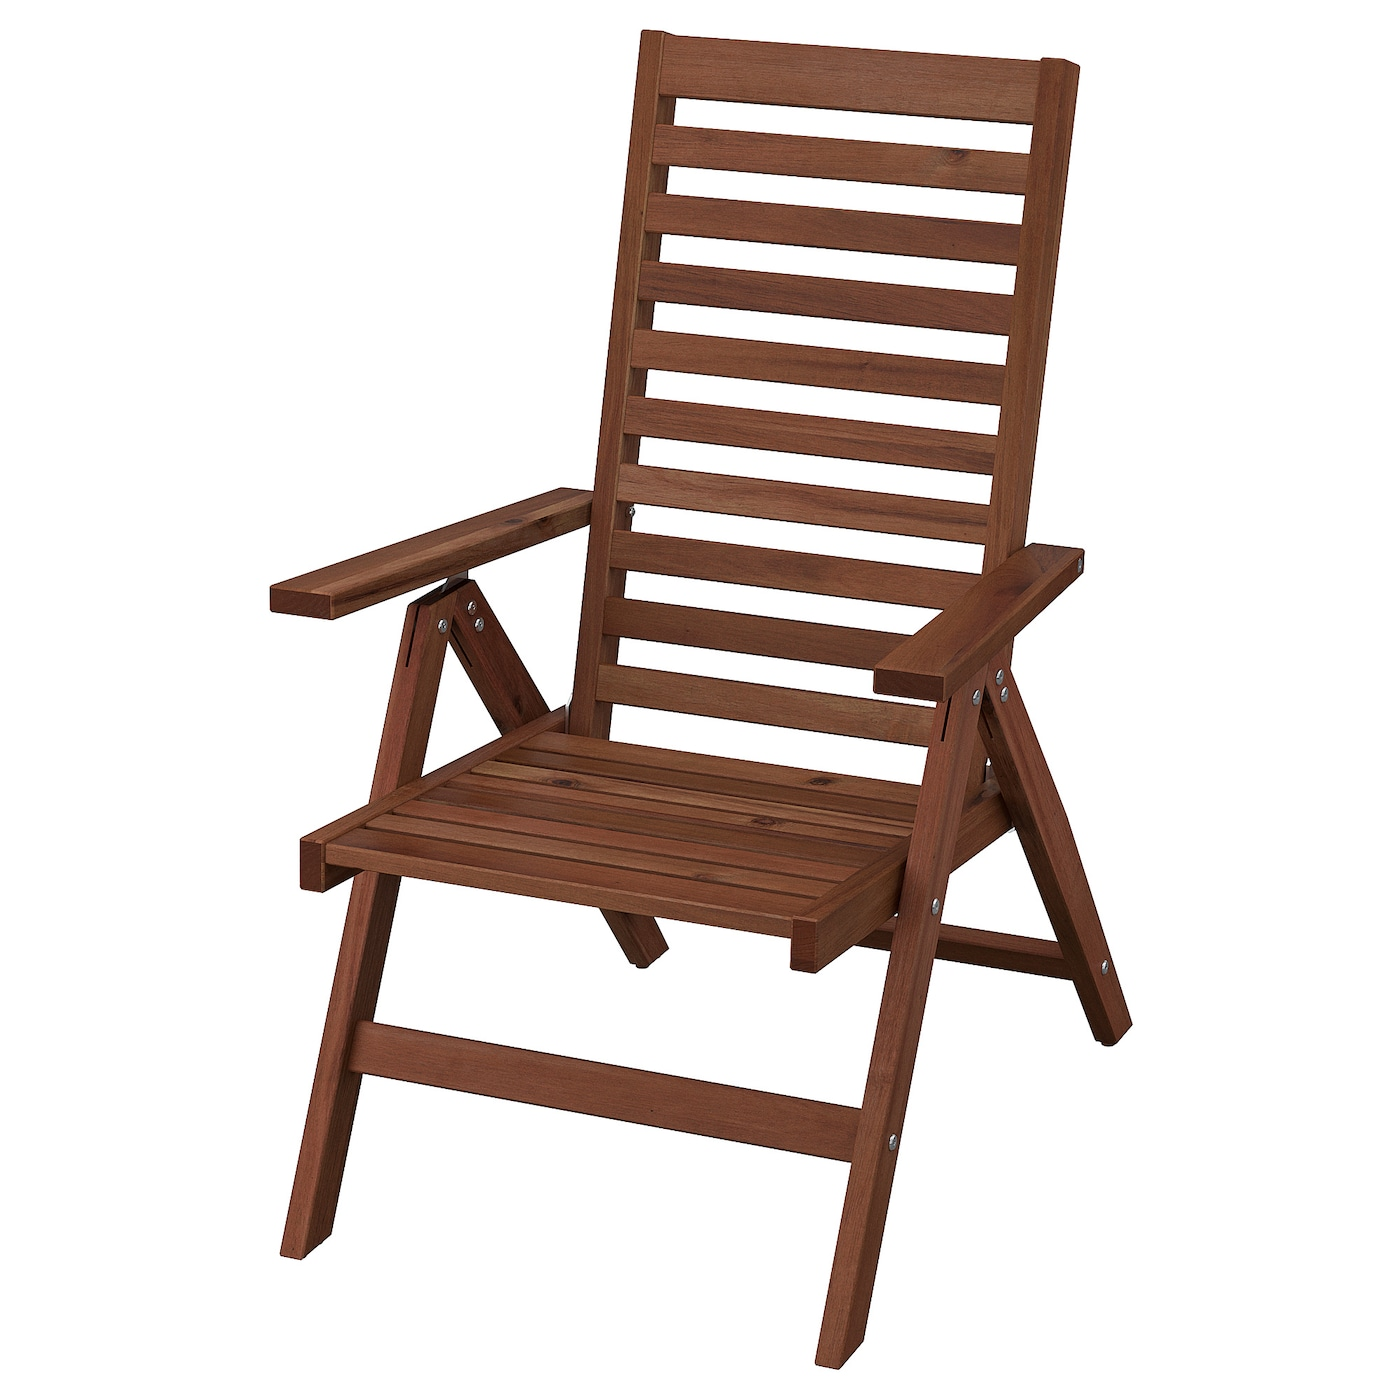 Applaro Reclining Chair Outdoor Brown Foldable Brown Stained Brown Ikea